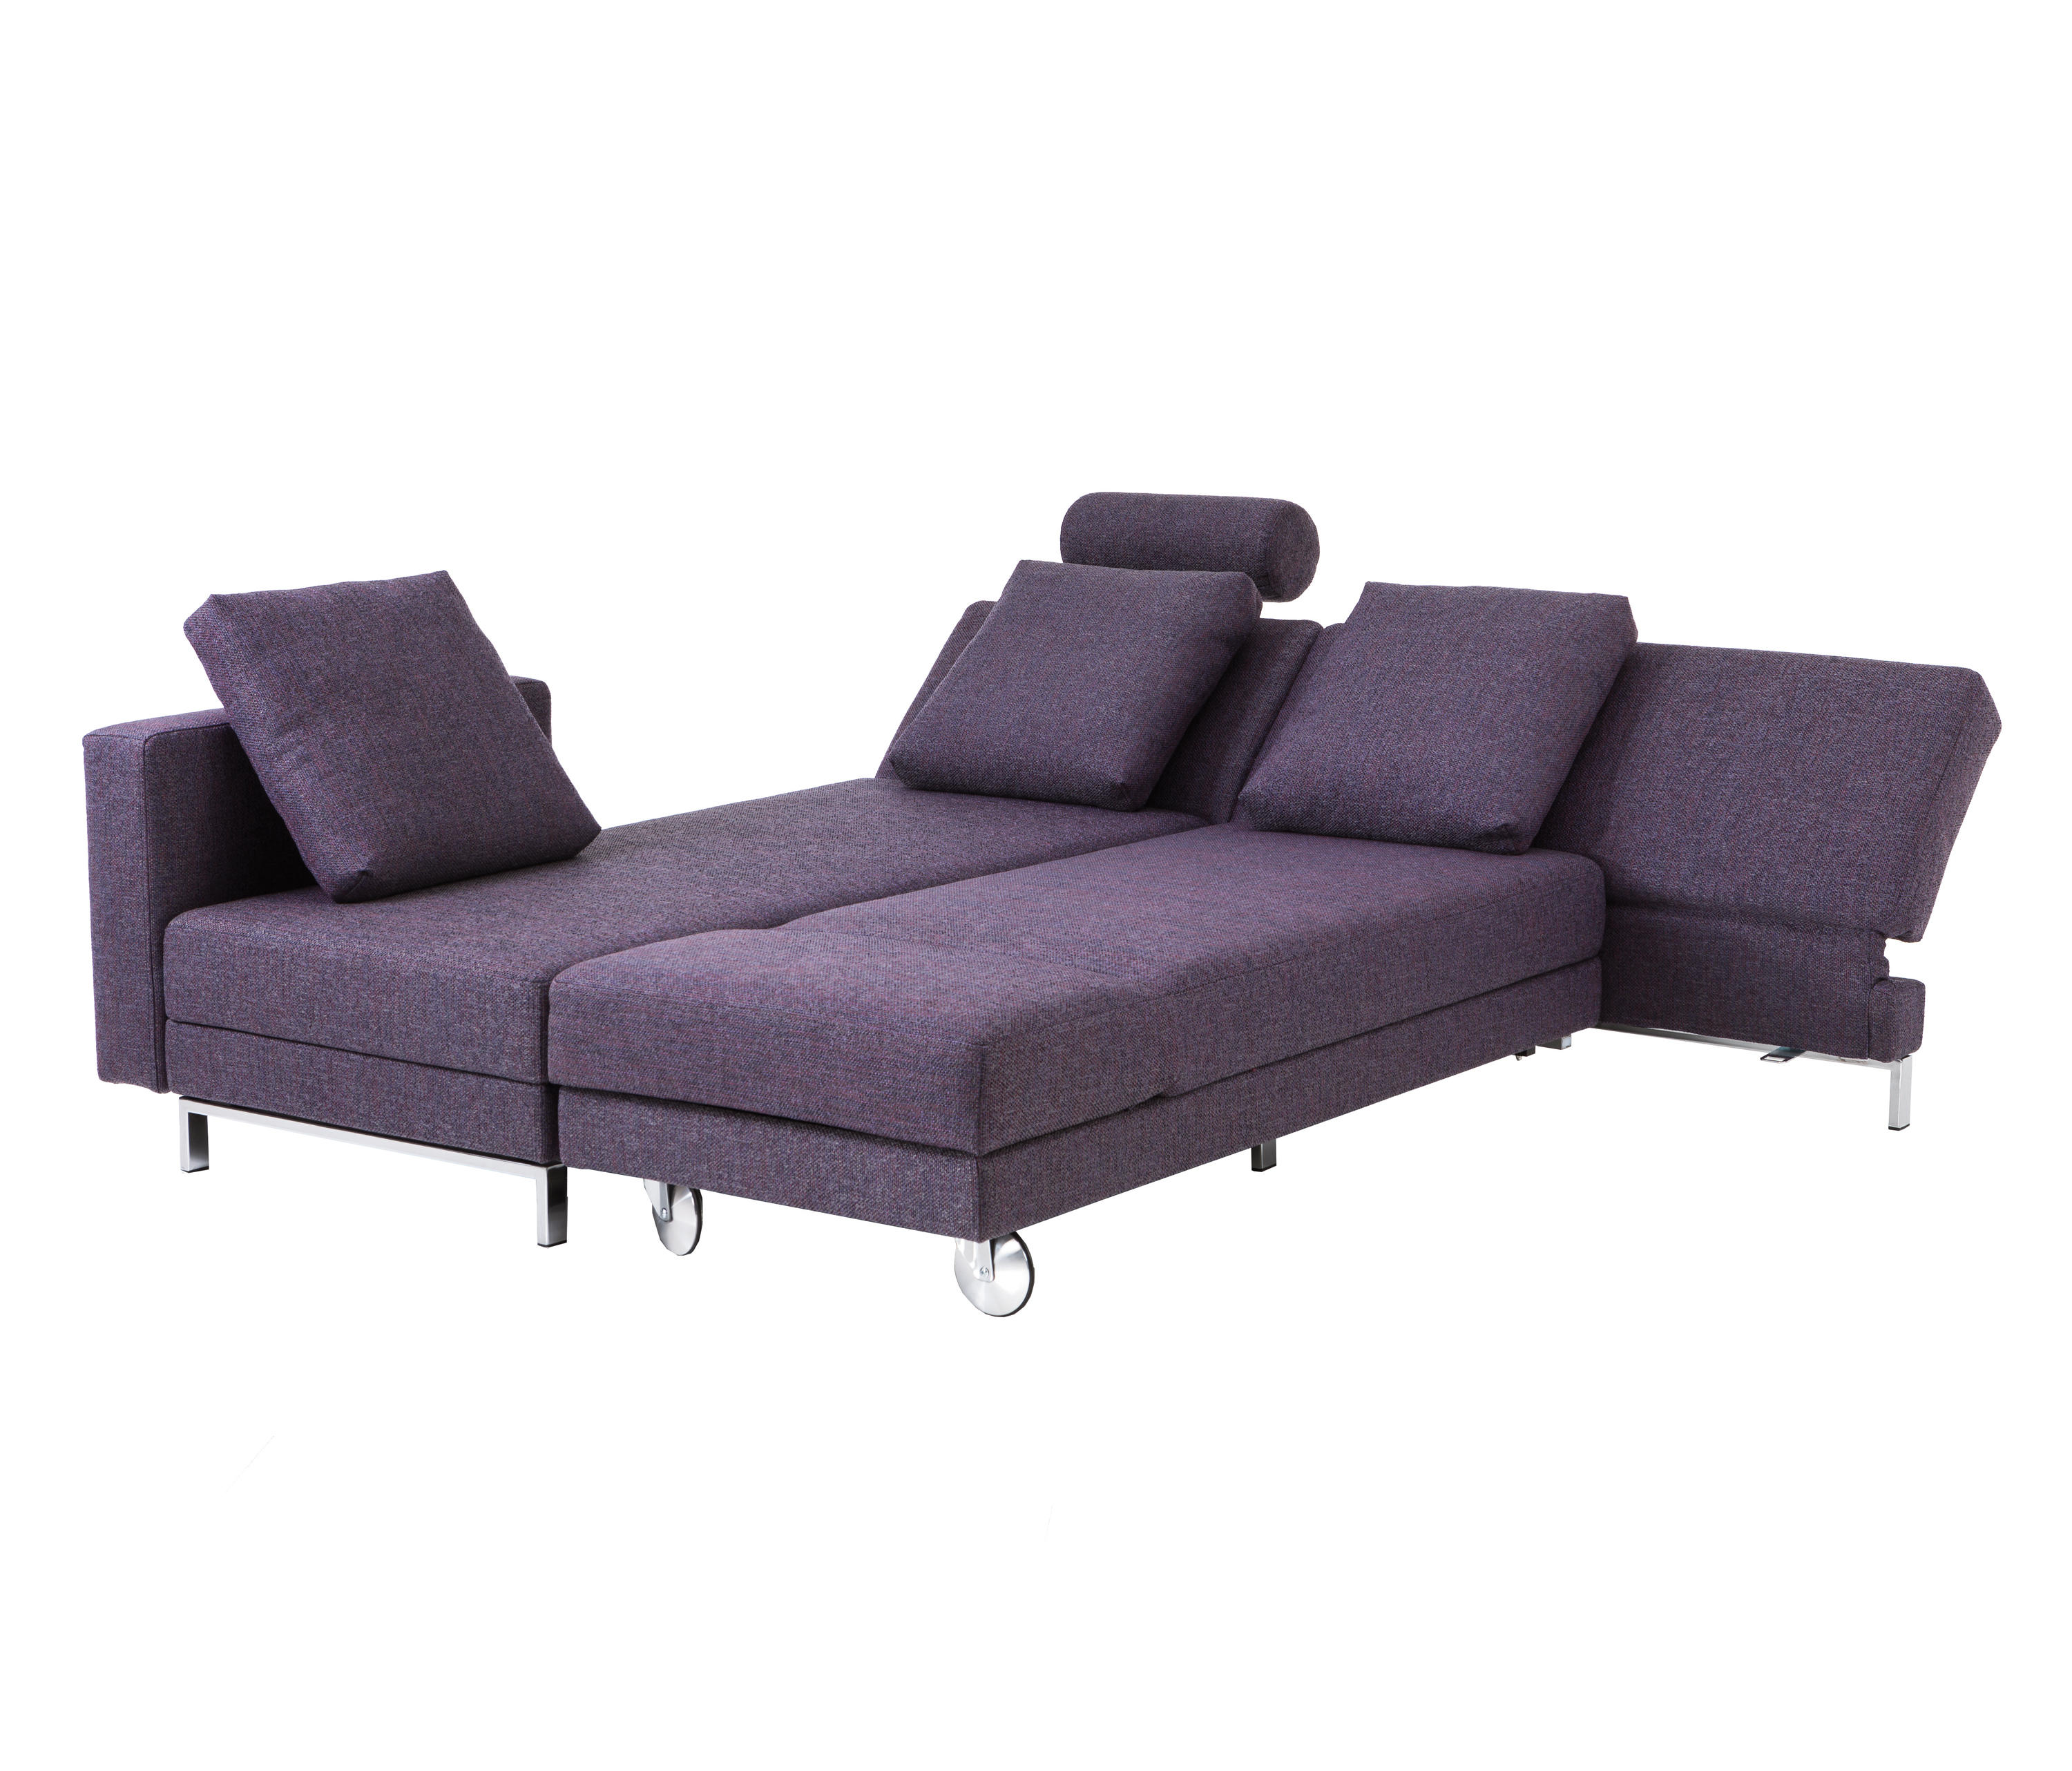 Bettsofa Element Four Two Bed Sofa Sofas From Brühl Architonic